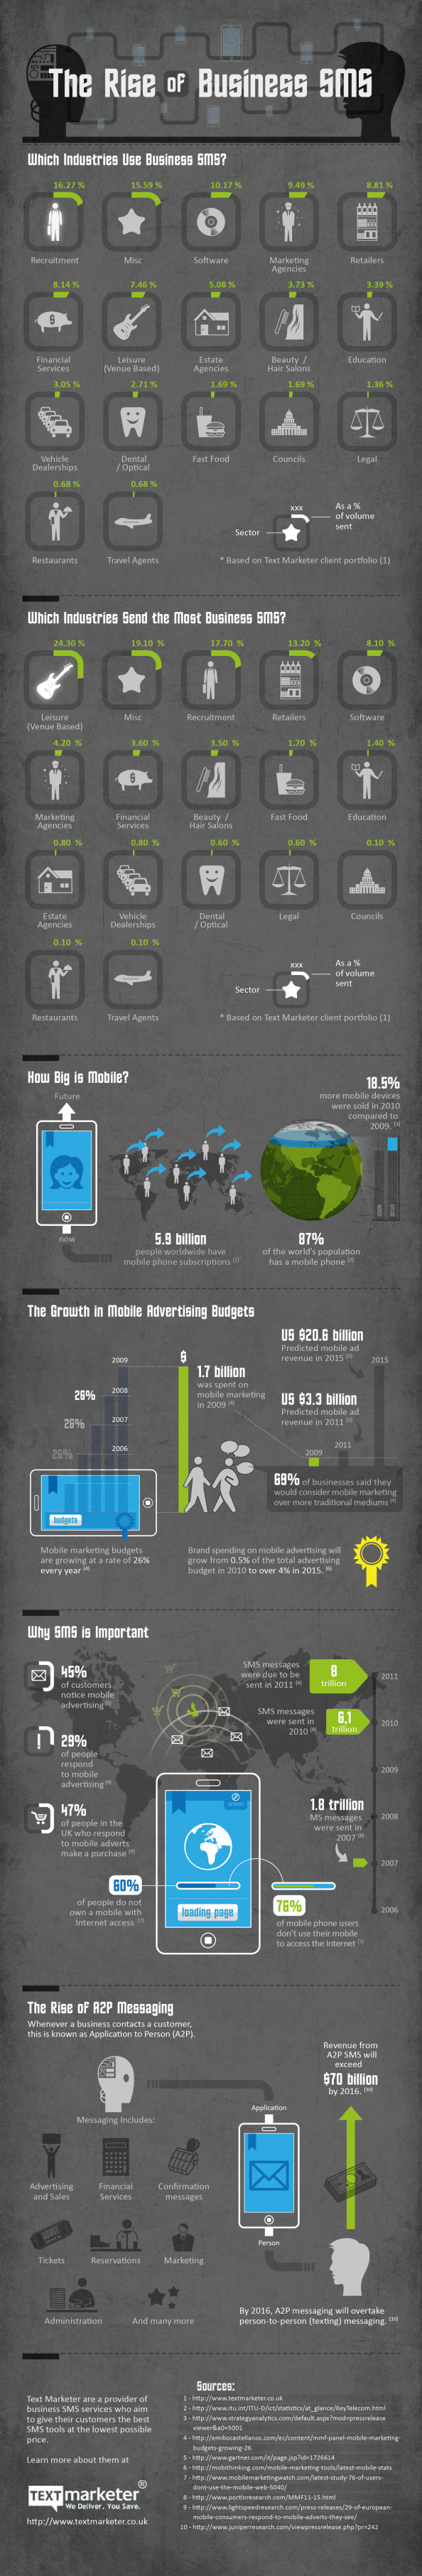 The Rise of Business SMS Infographic